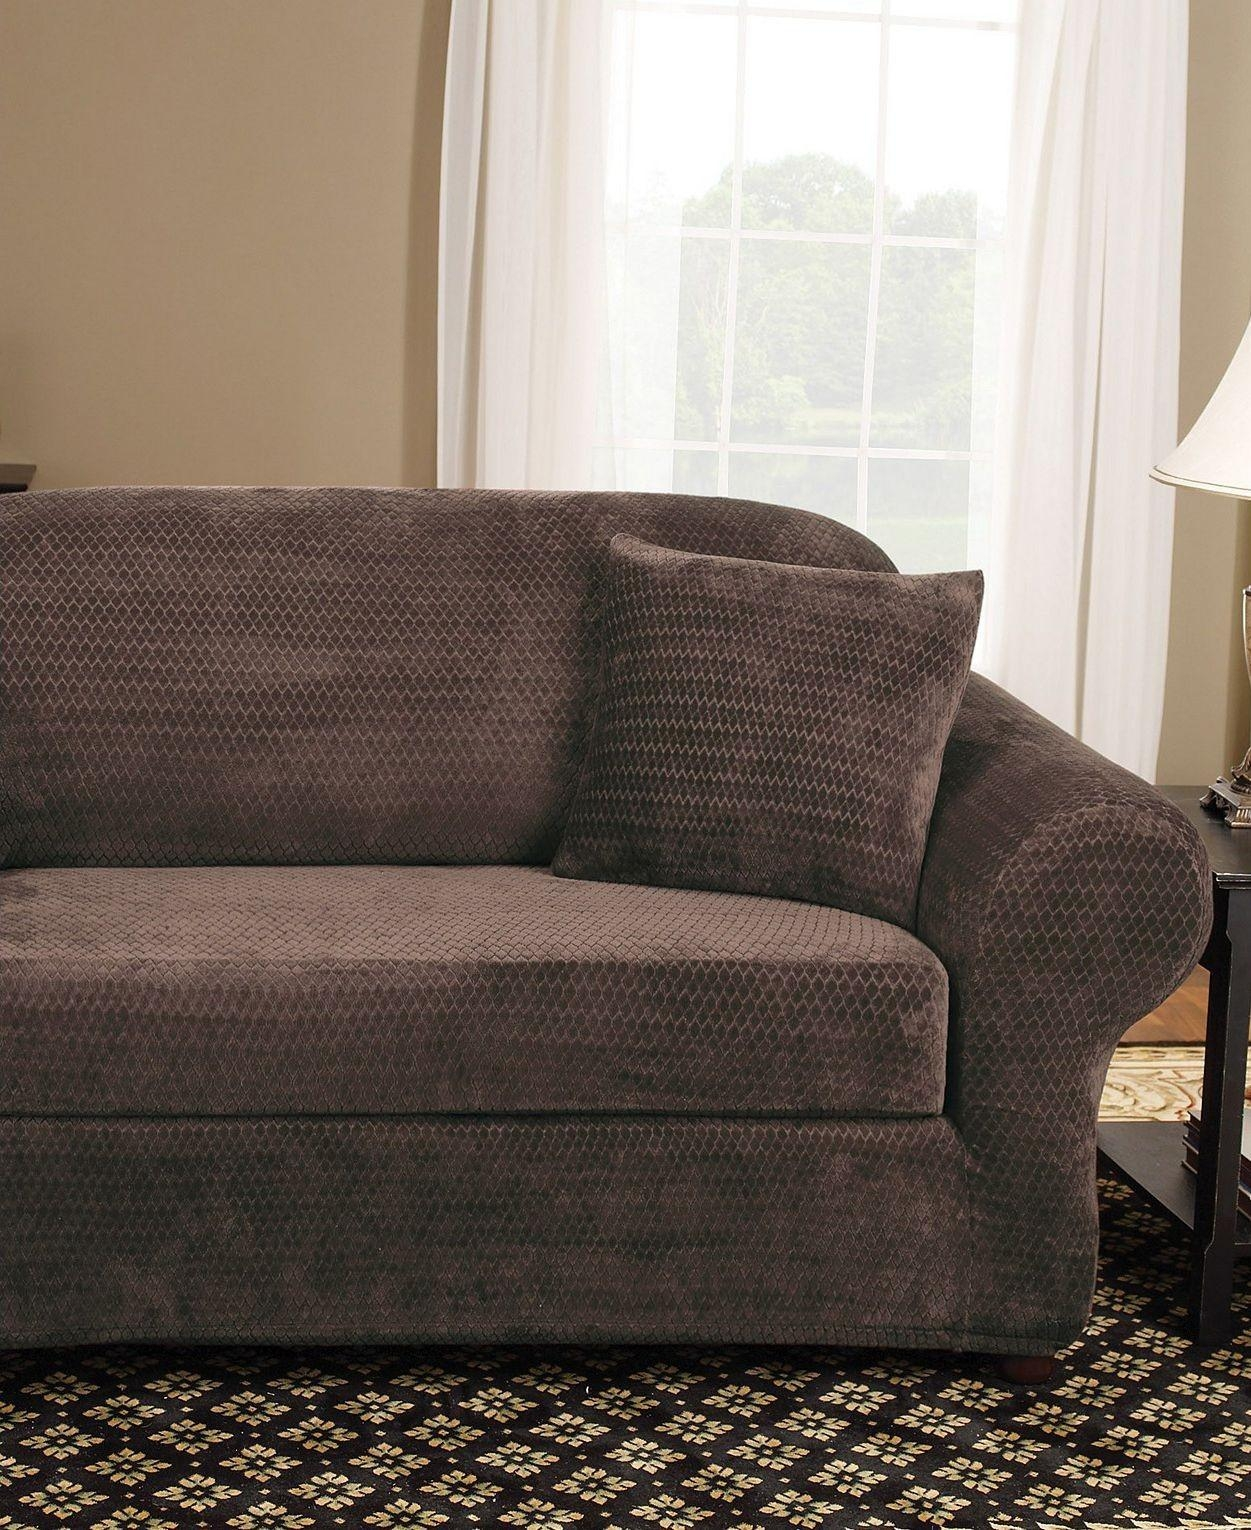 Sure Fit Stretch Suede 2 Piece Sofa Slipcover Chocolate With 2 Piece Sofa Covers (Image 26 of 27)